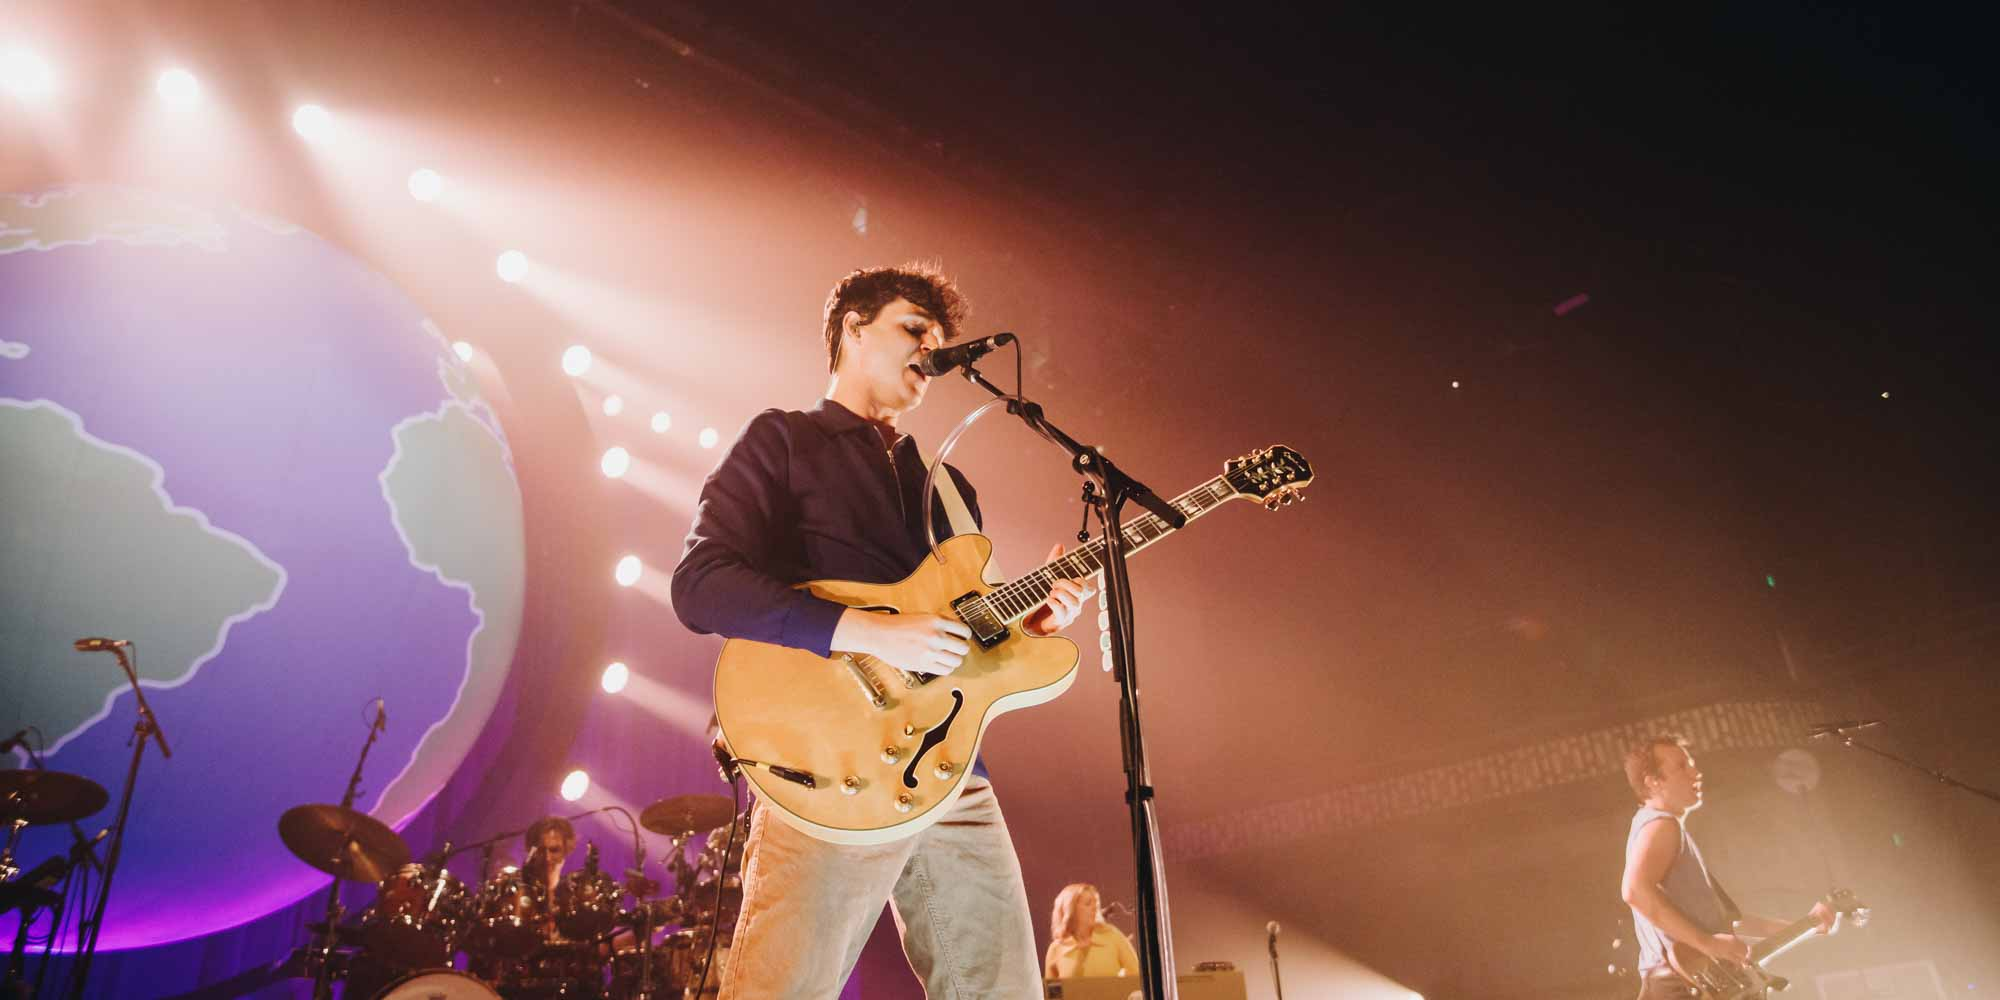 Ezra Koenig of Vampire Weekend live in Minnesota. Photography by Joshua Garcia.